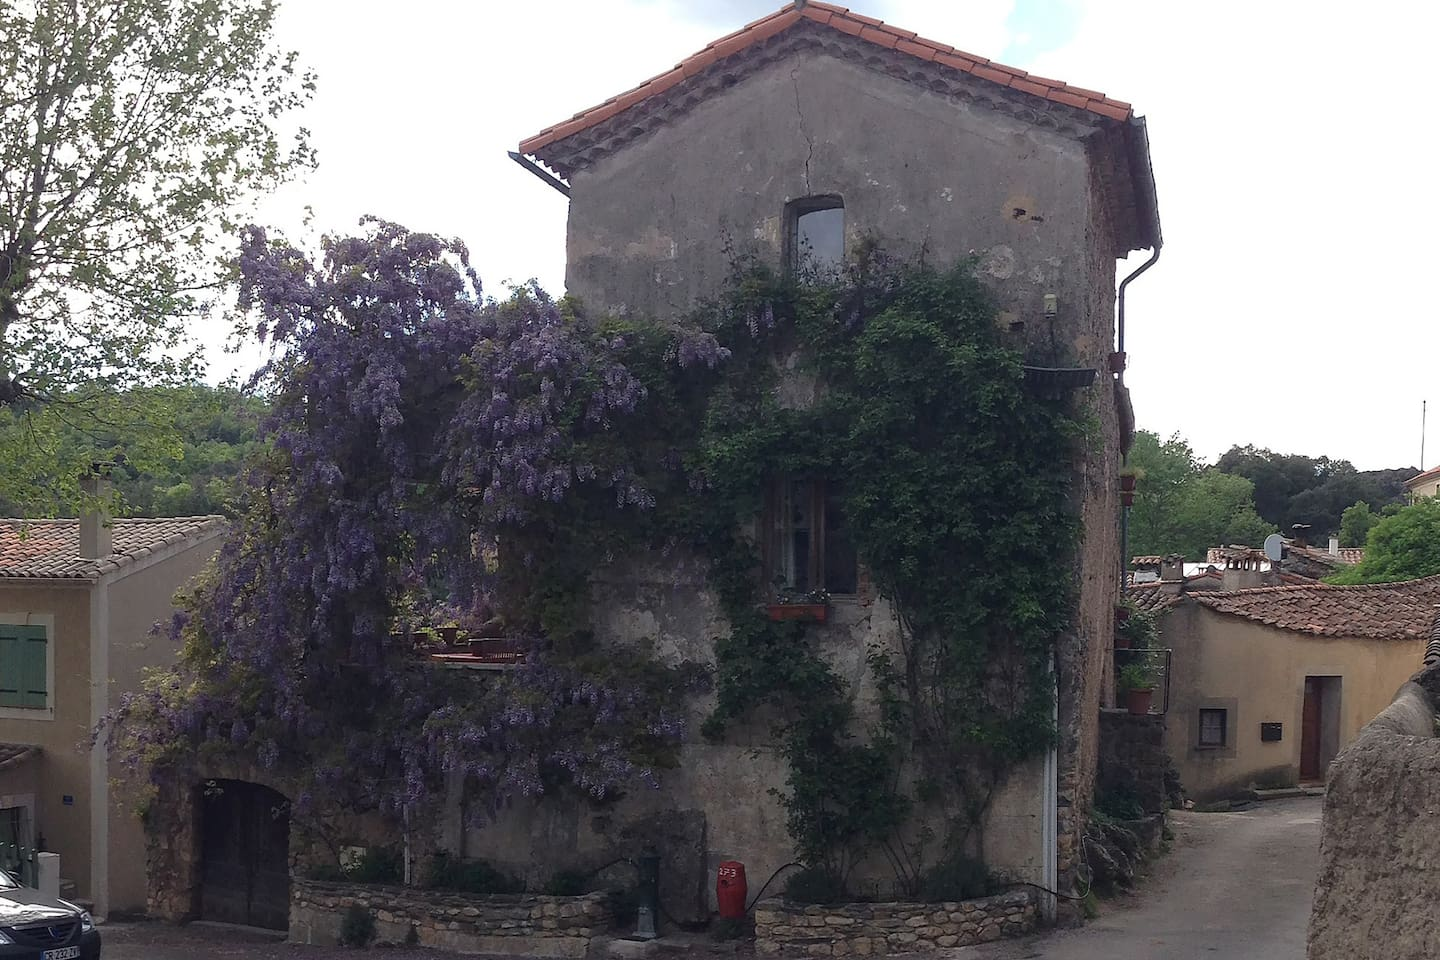 Wisteria! Roses about to bloom all over house! Taken May 2013